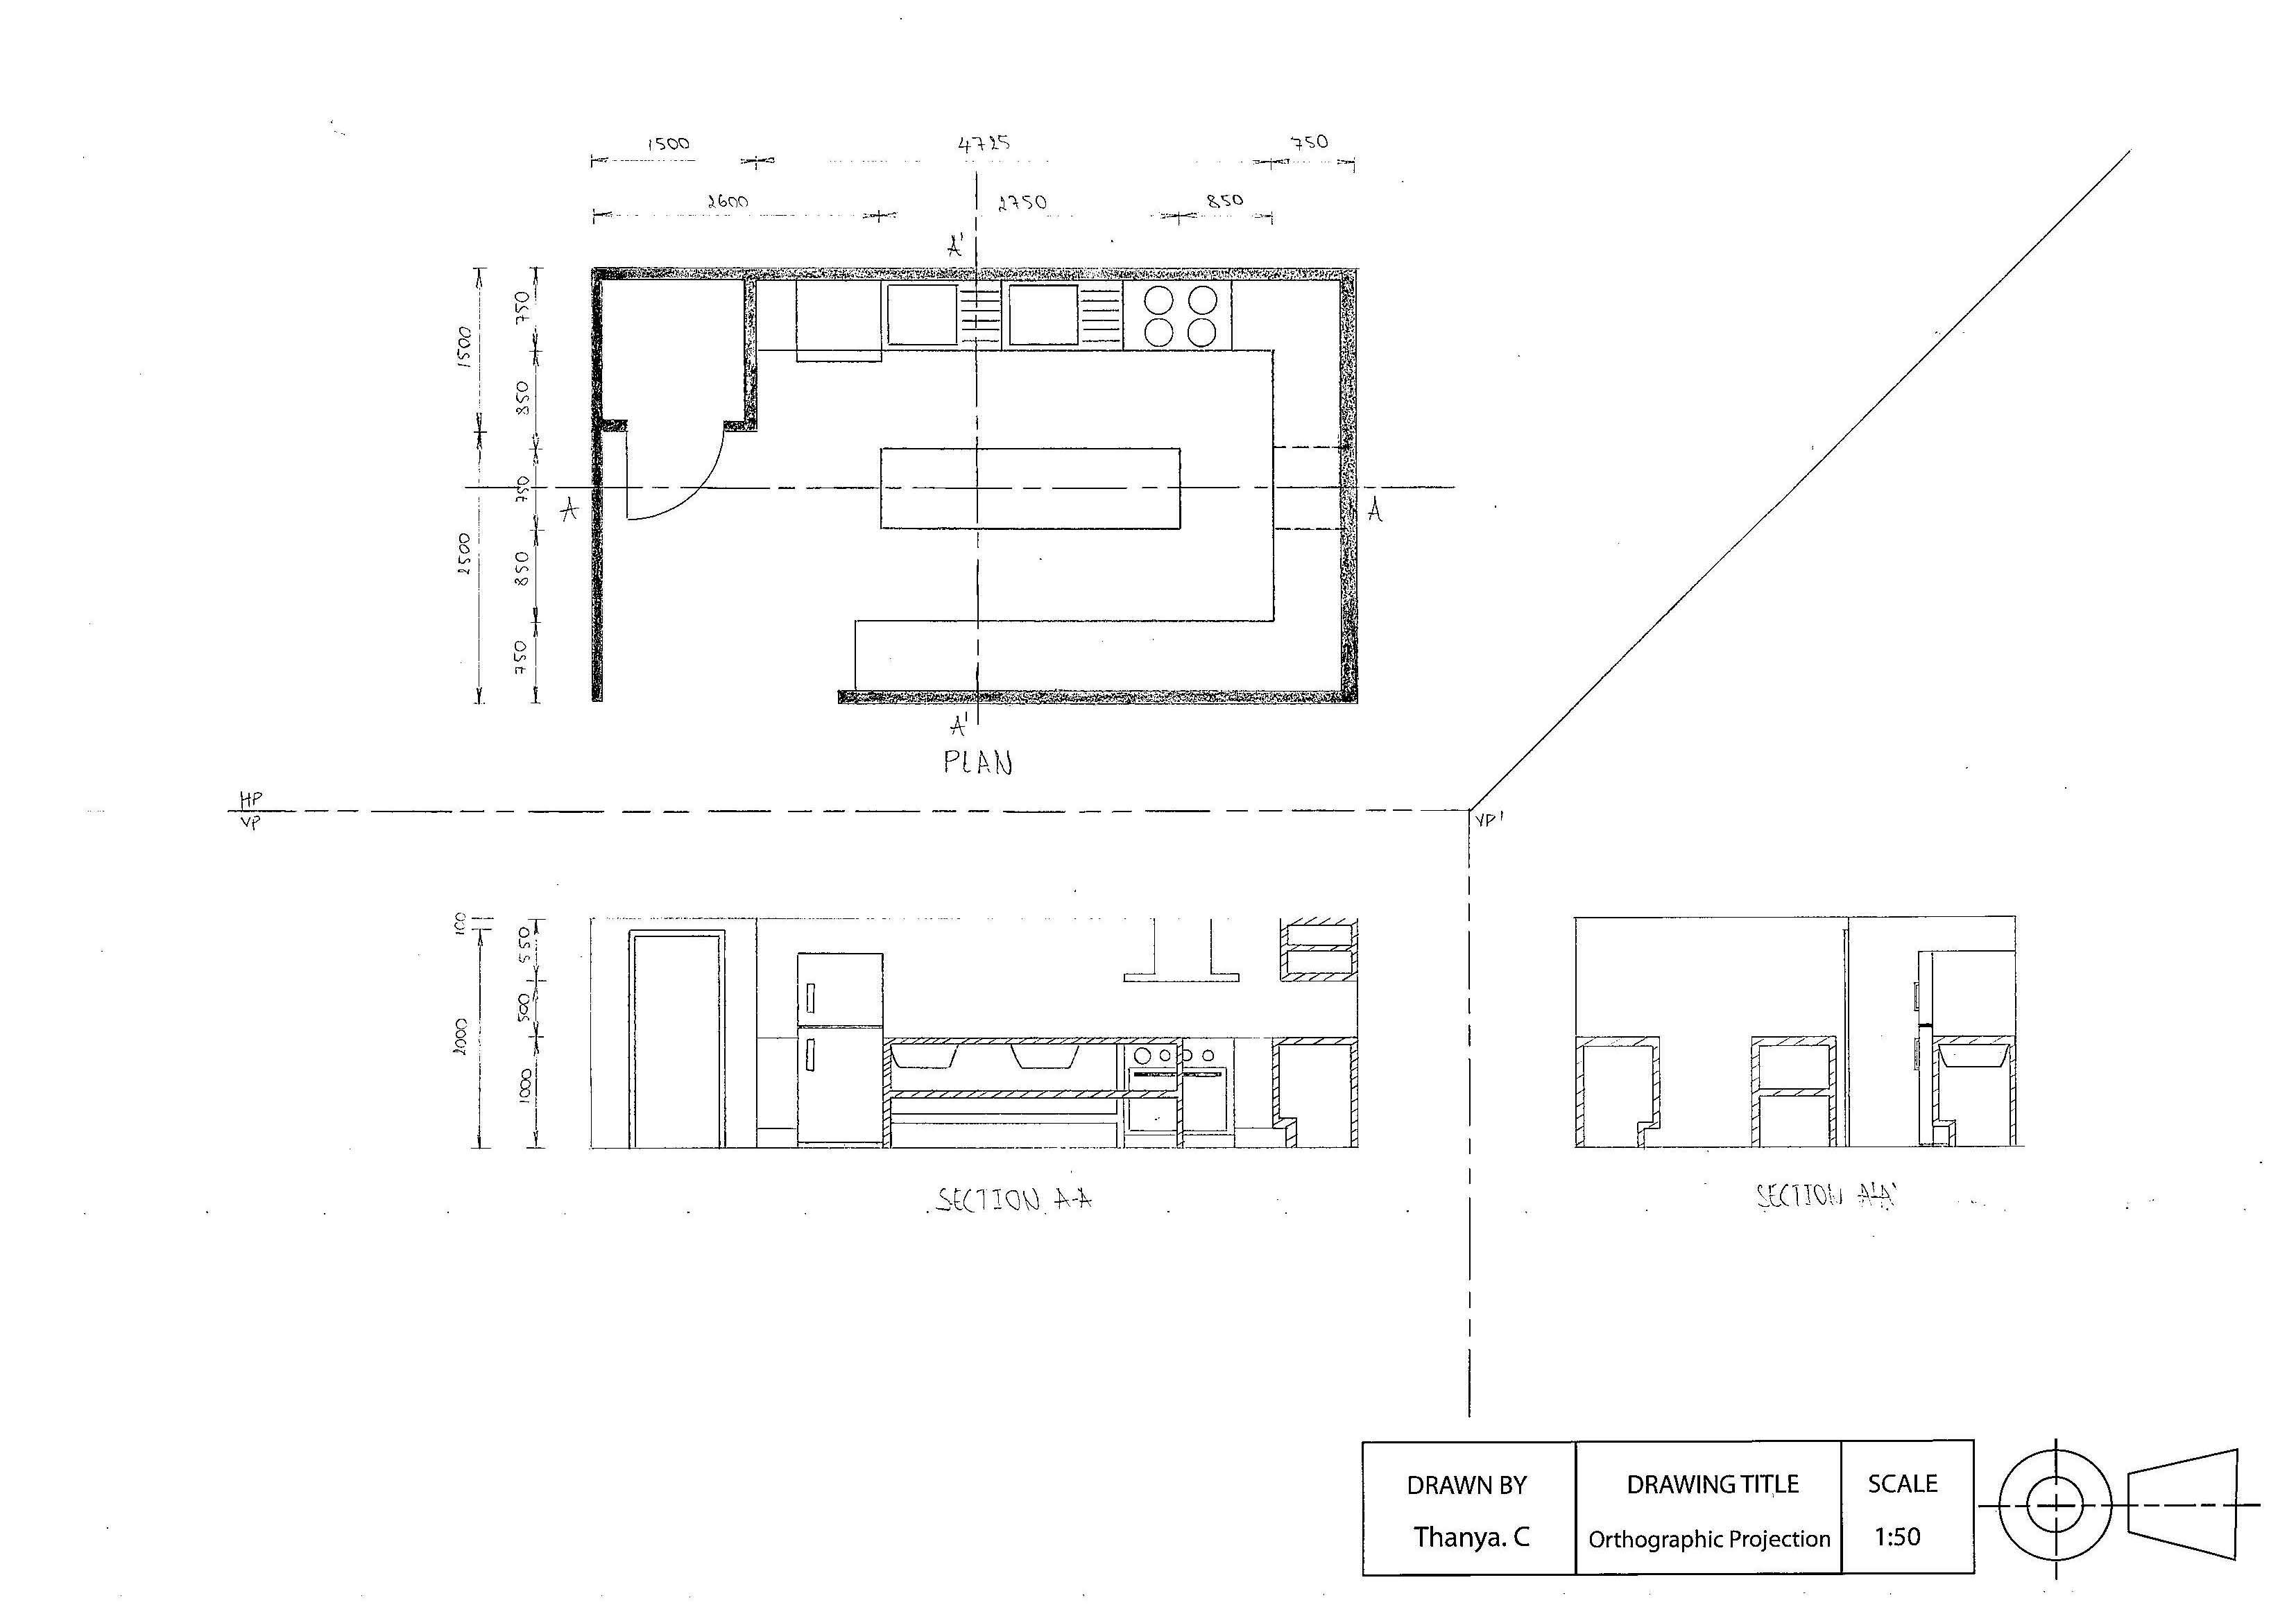 Caf  s Kitchen Orthographic Drawing  with Cross Section